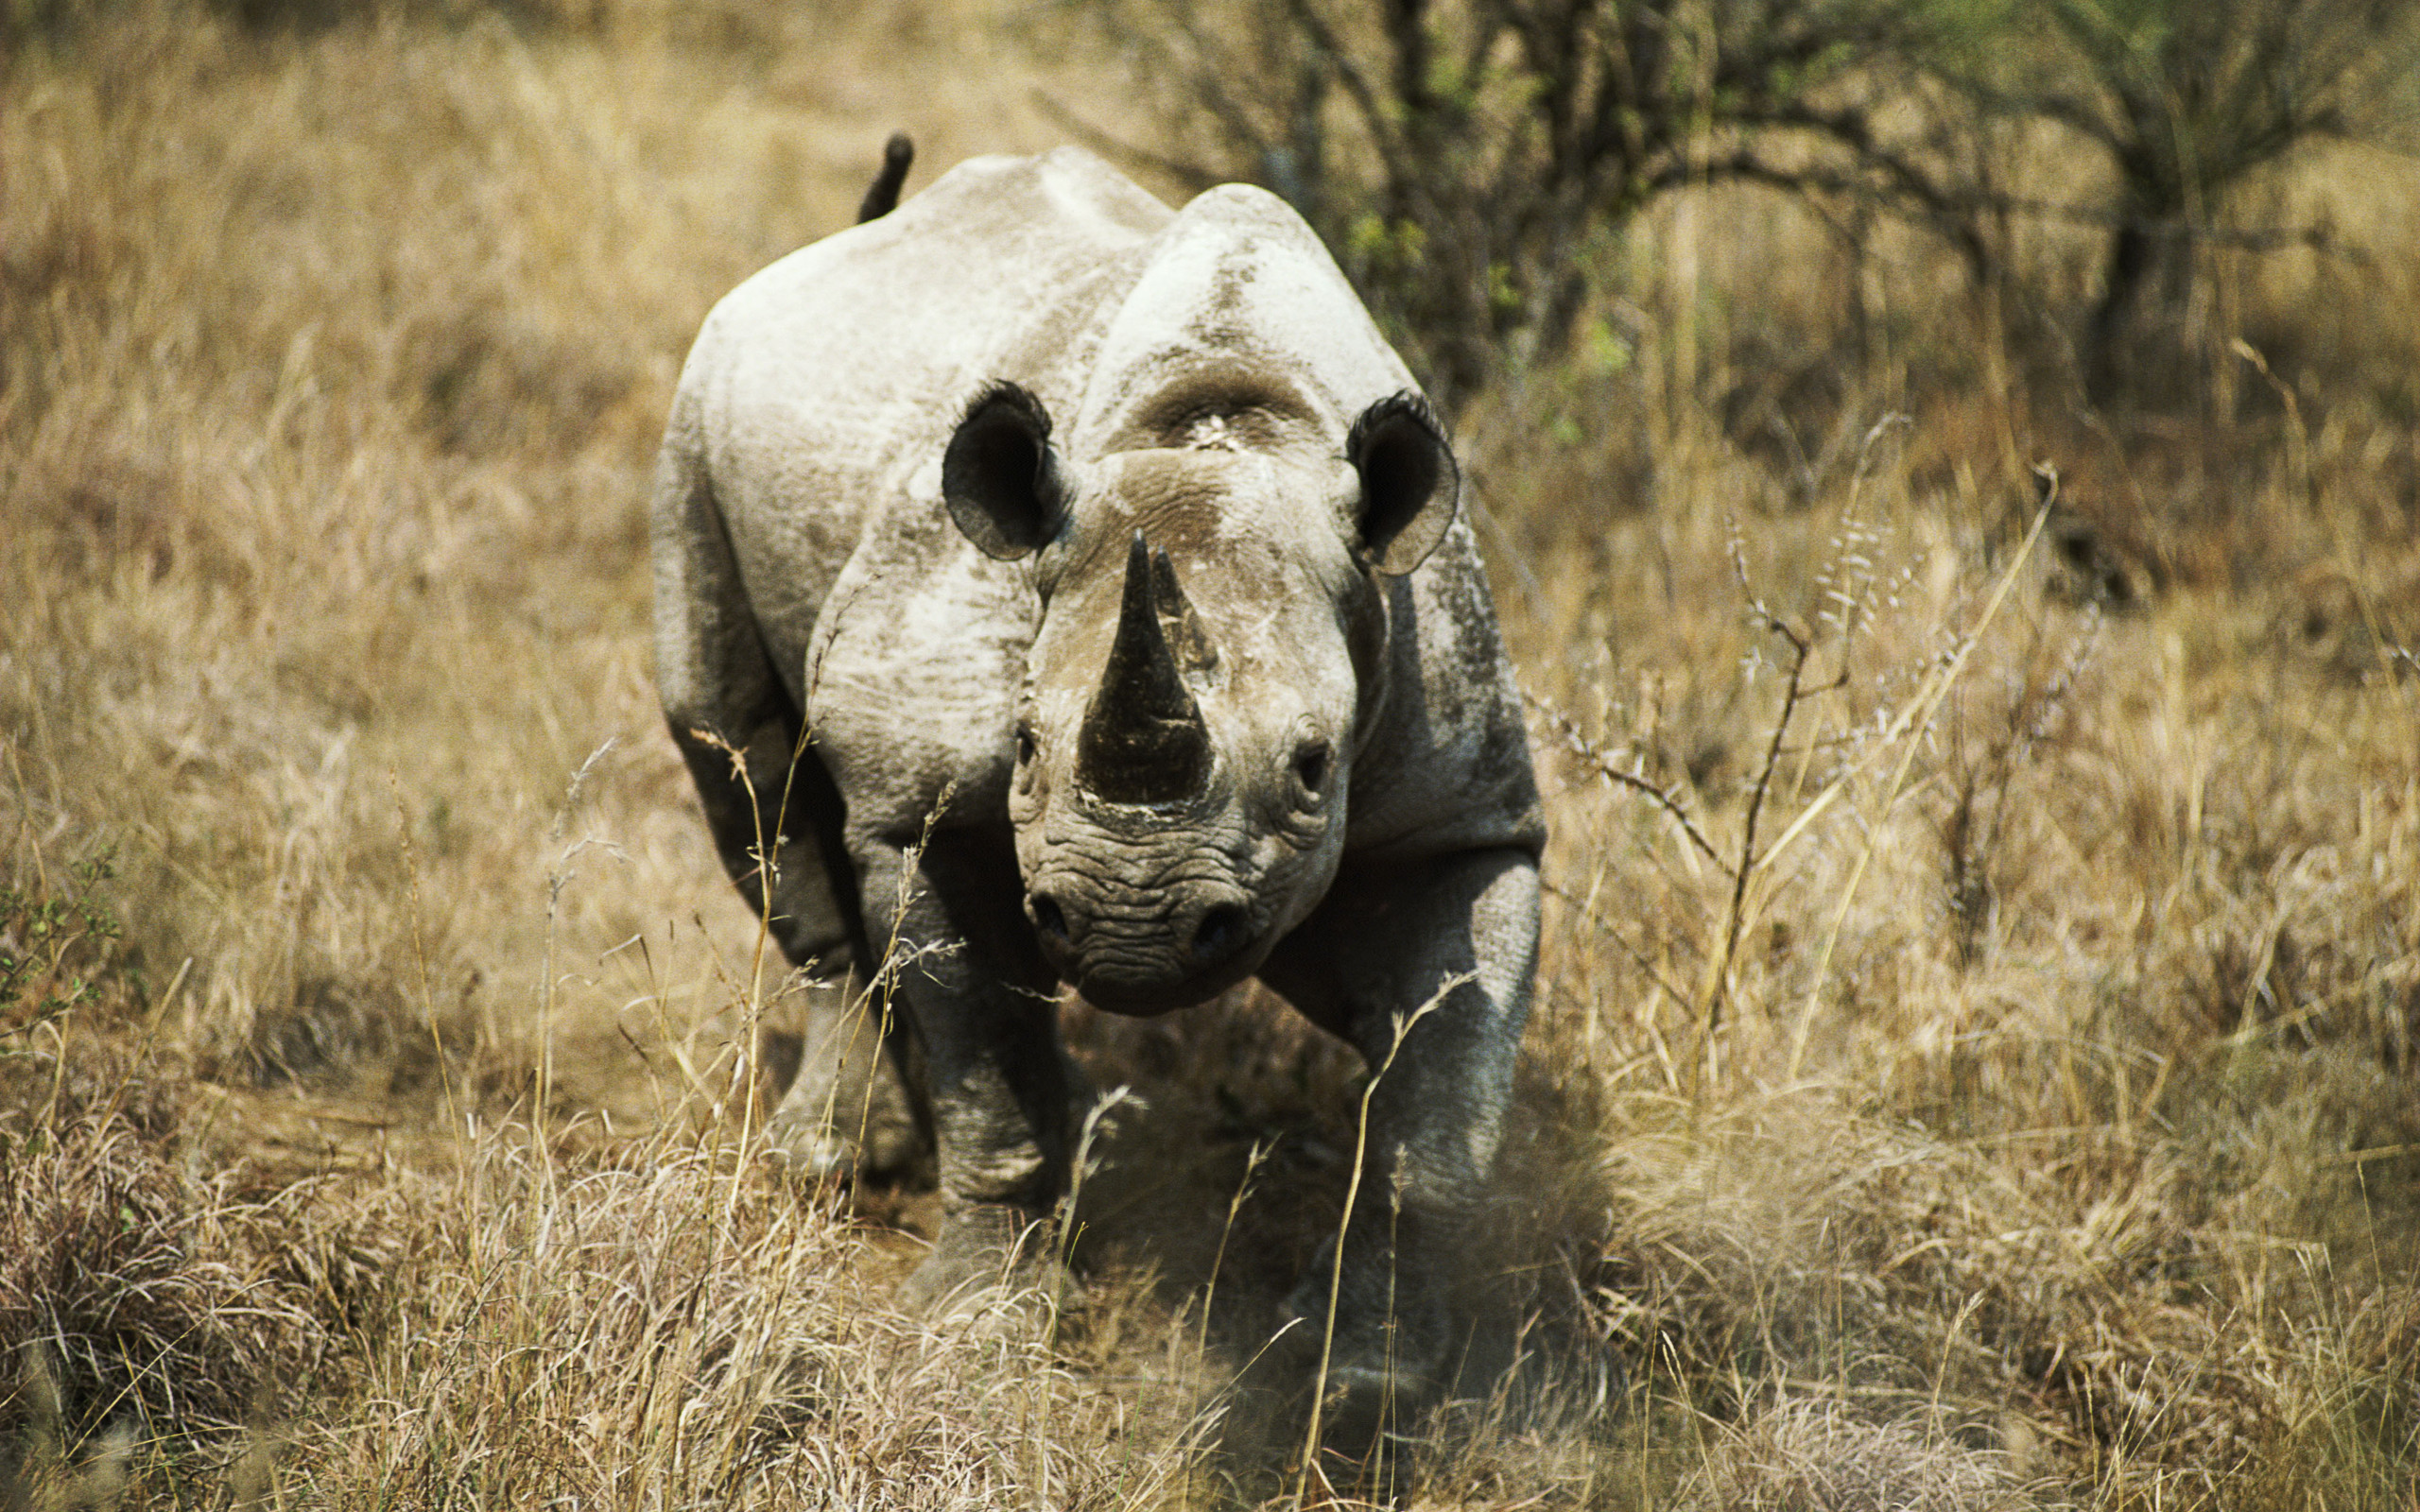 102 rhino hd wallpapers   backgrounds - wallpaper abyss